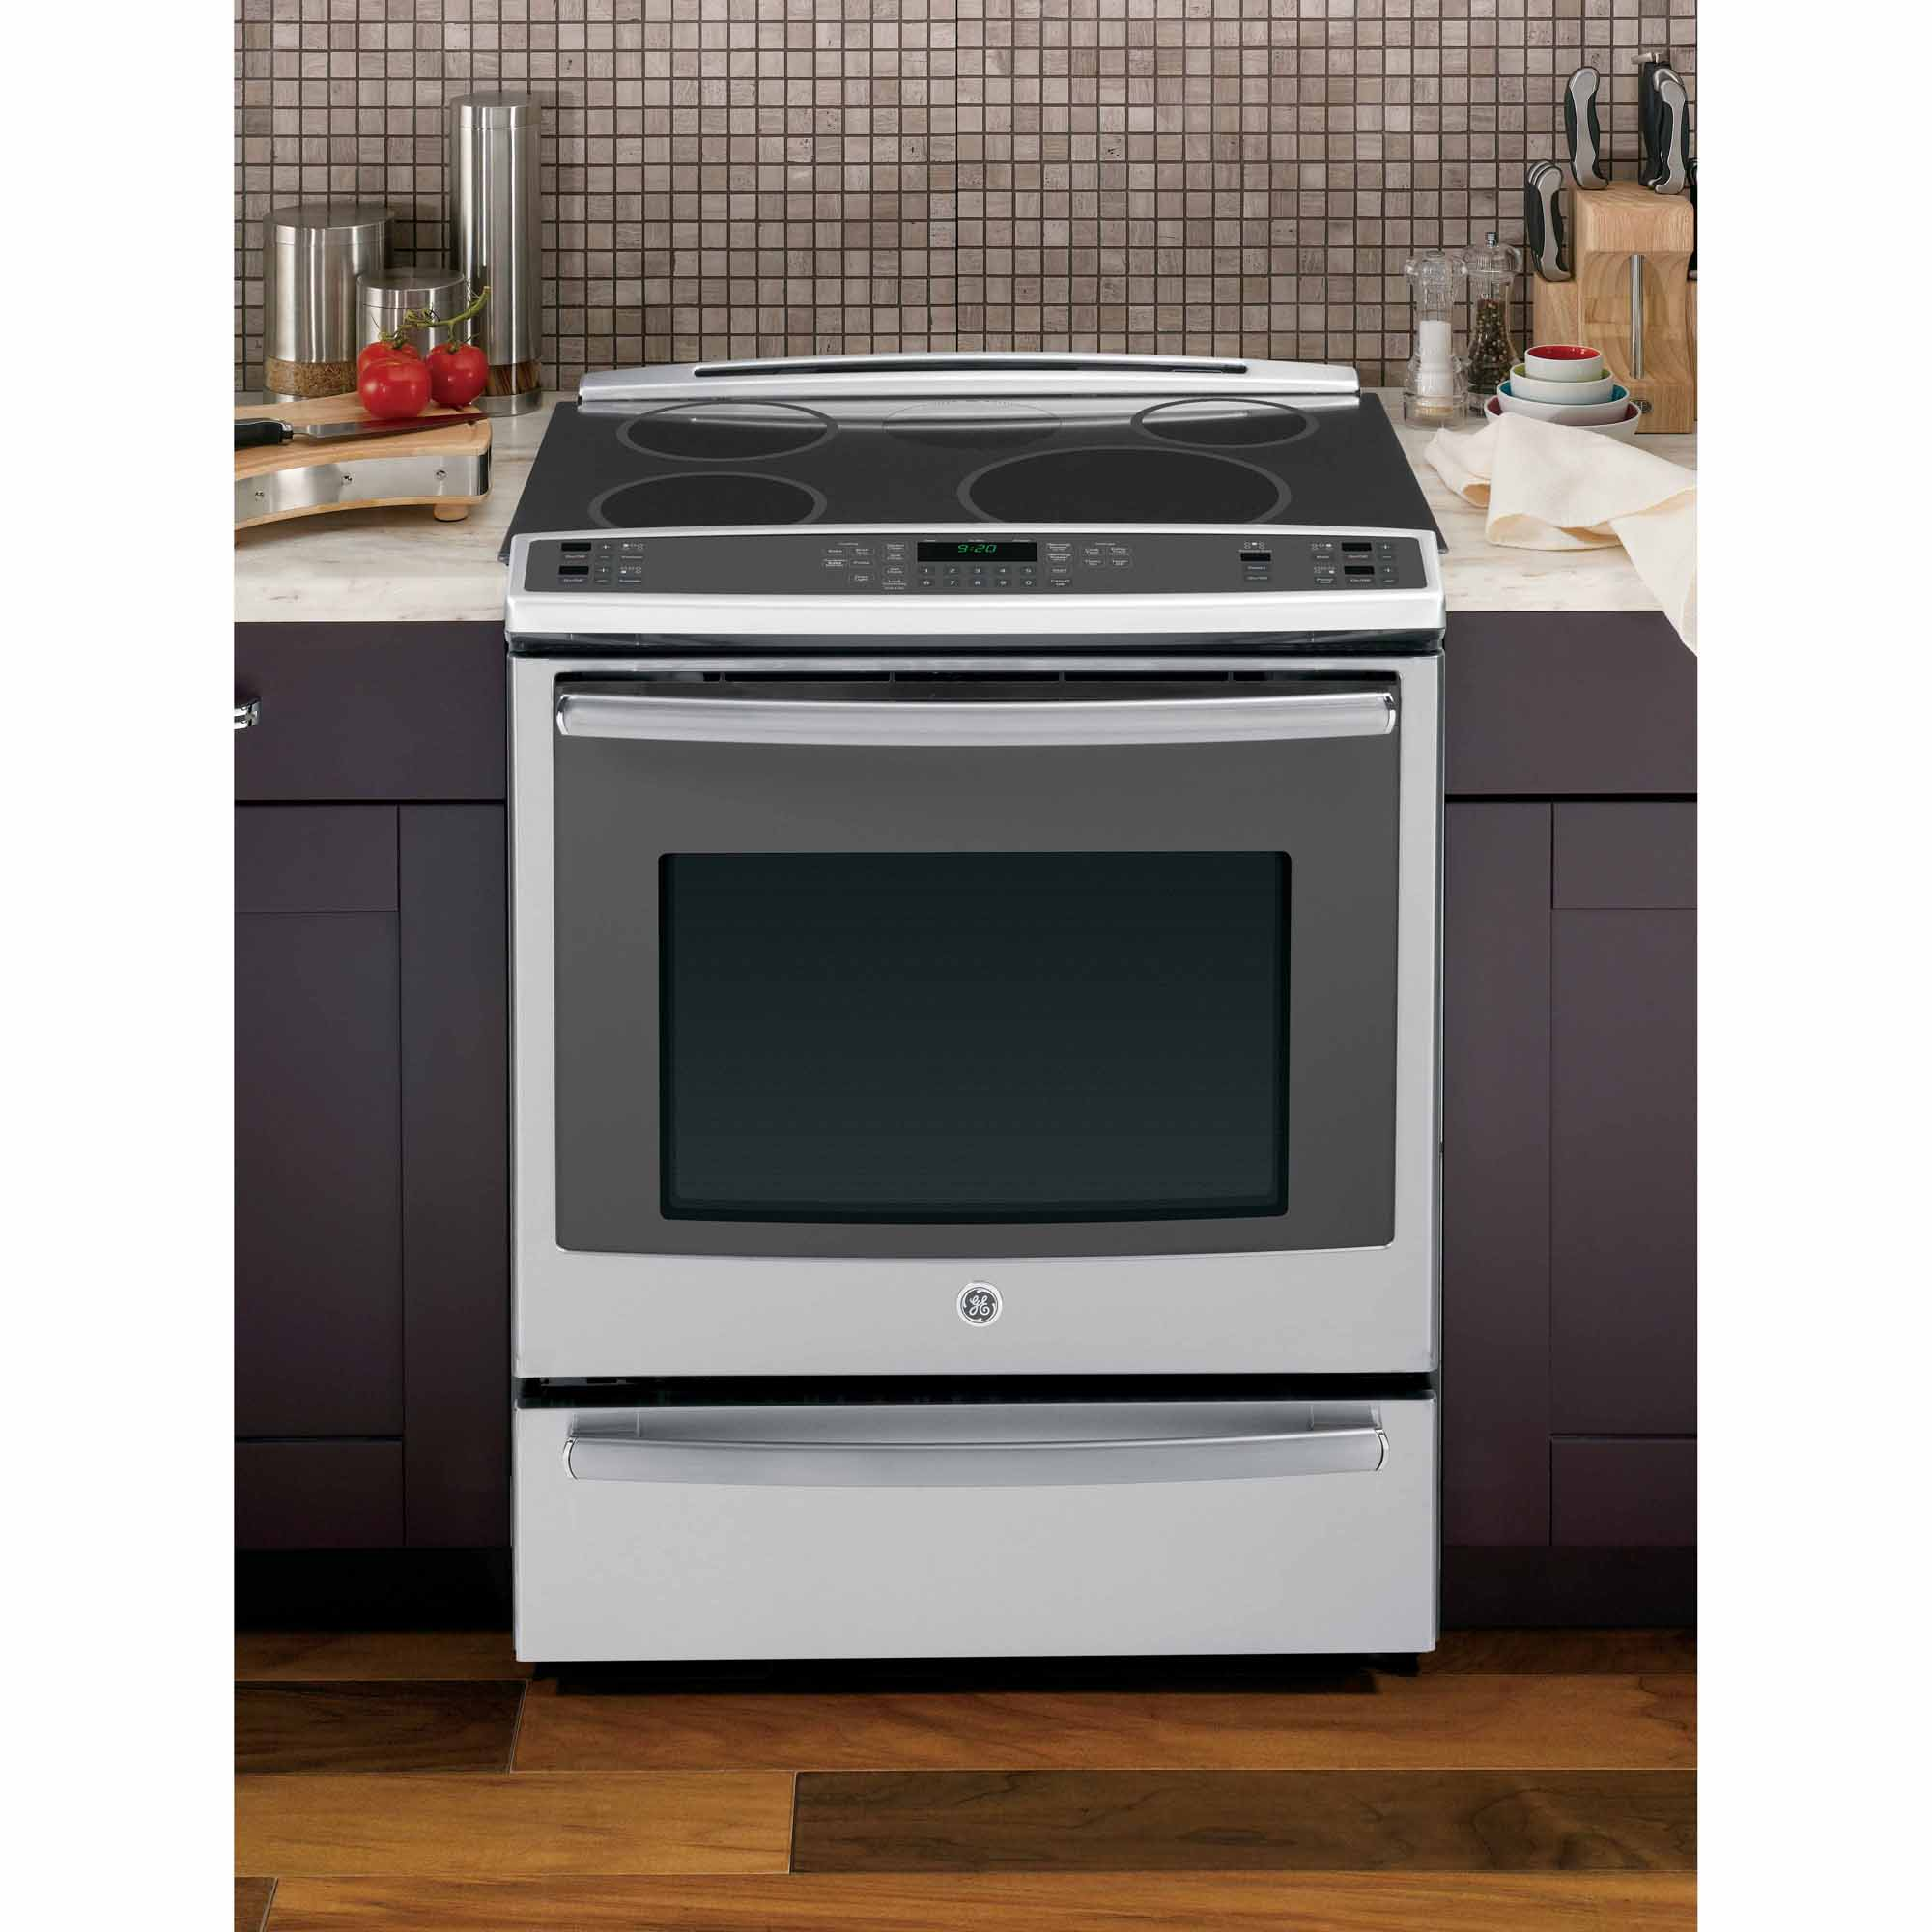 "GE Profile 30"" Slide-In Induction Range w/ True Convection - Stainless Steel"